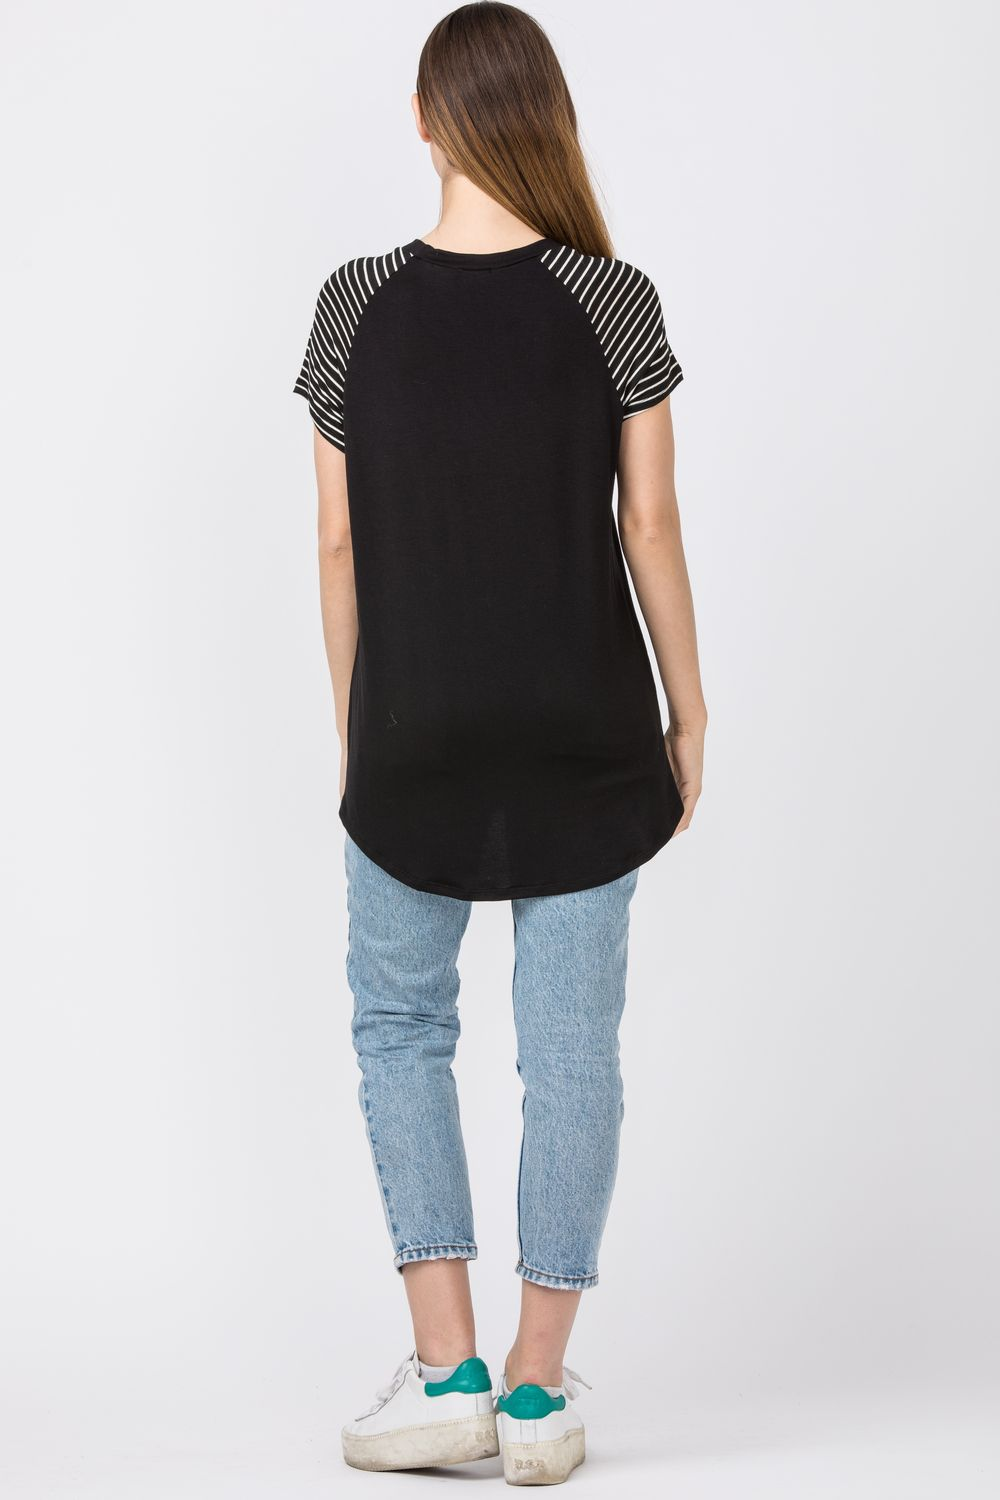 Black Raglan Stripe Sleeve & Chest-Pocket Tunic Top